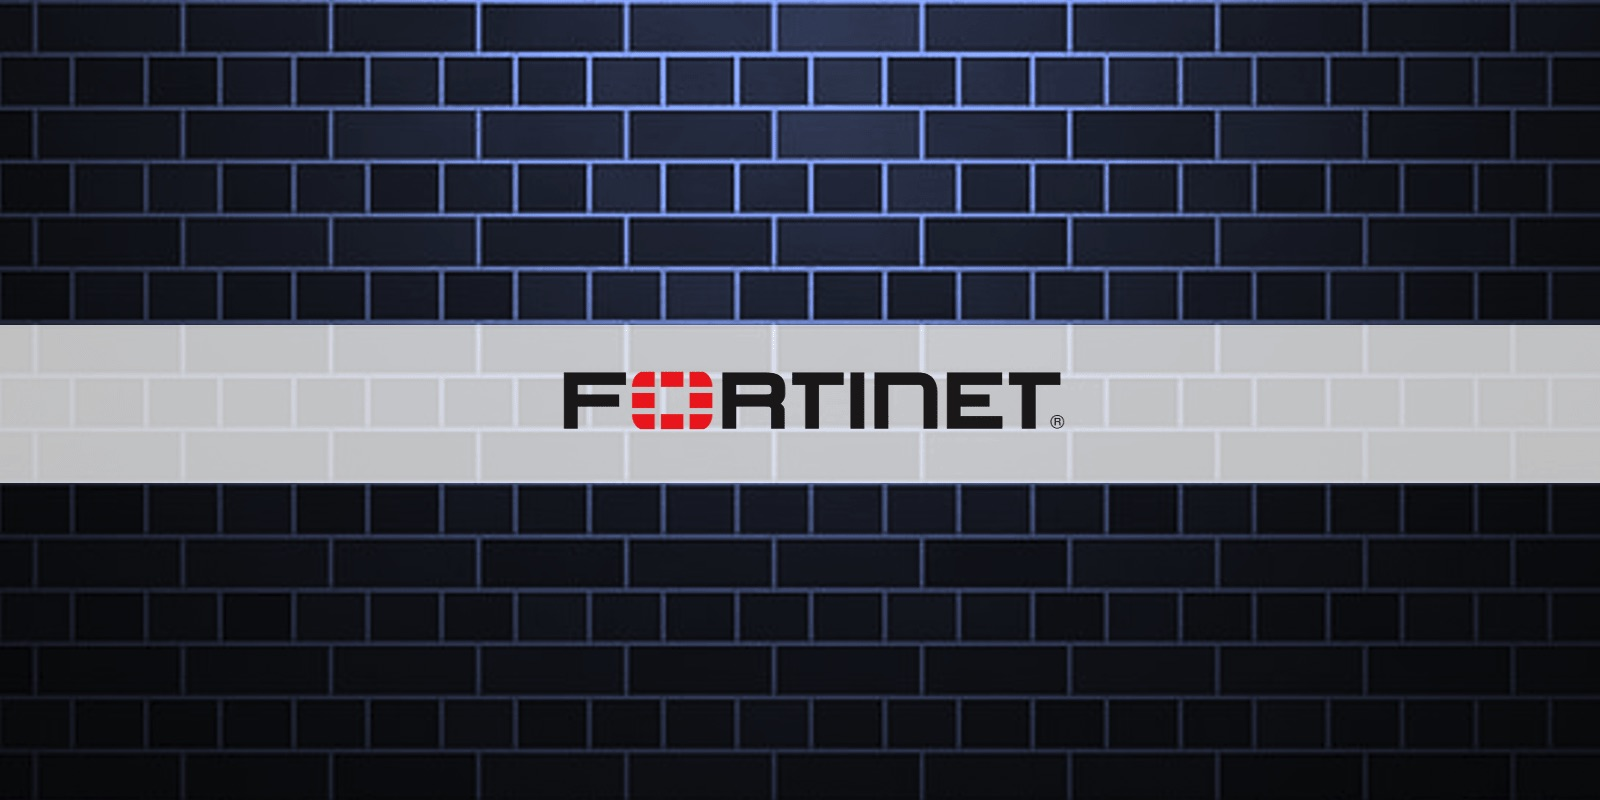 Fortinet Vulnerabilities Being Actively Exploited